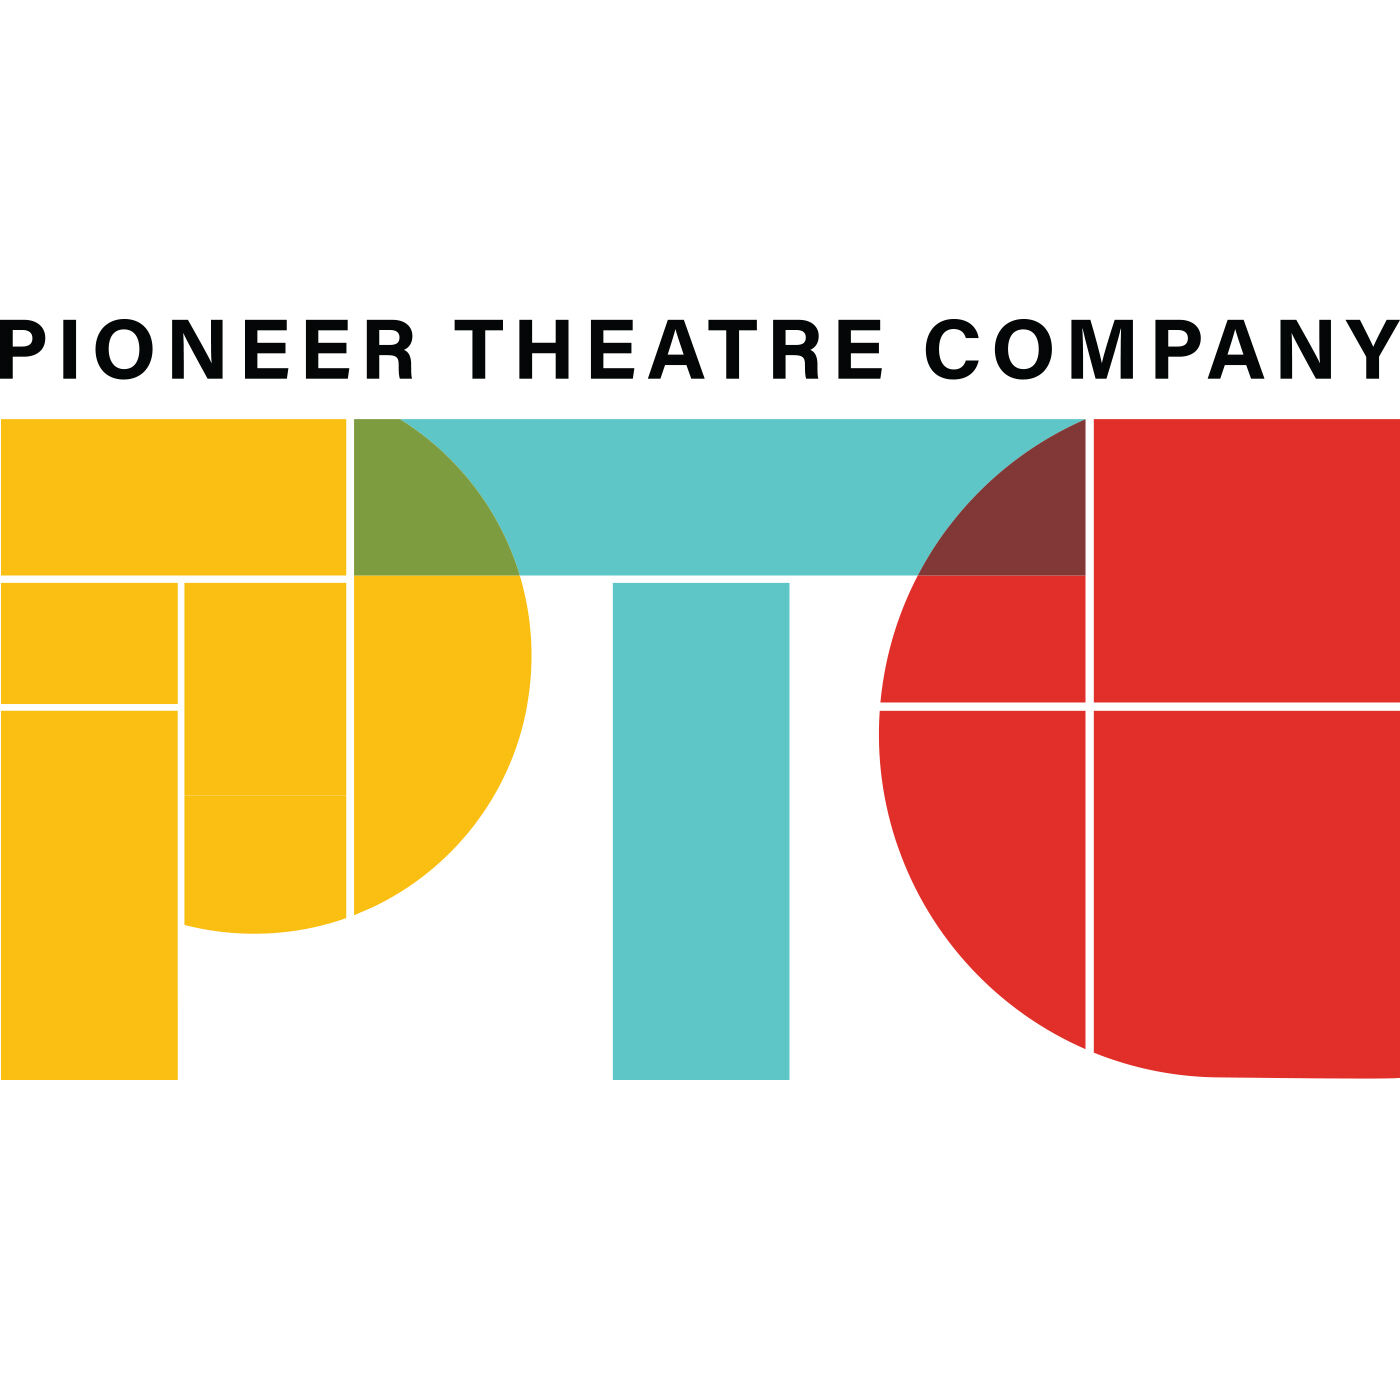 Introducing the 2019-2020 season at Pioneer Theatre Company